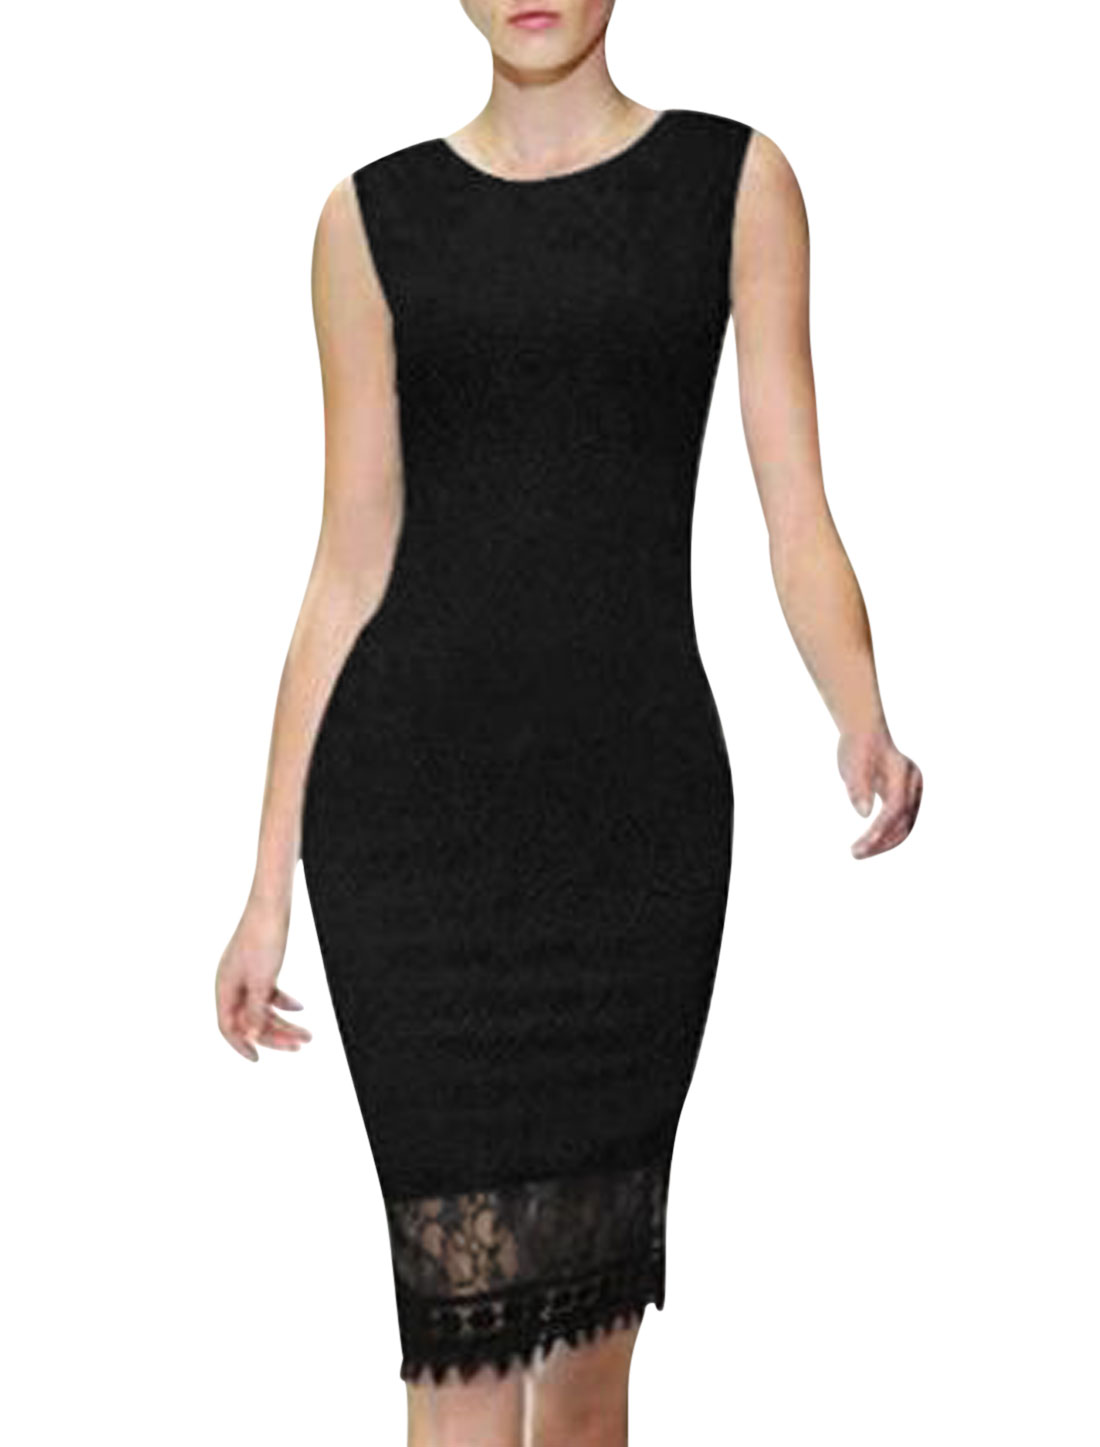 Ladies Round Neck Sleeveless Full Lined Slipover Lace Wiggle Dress Black M